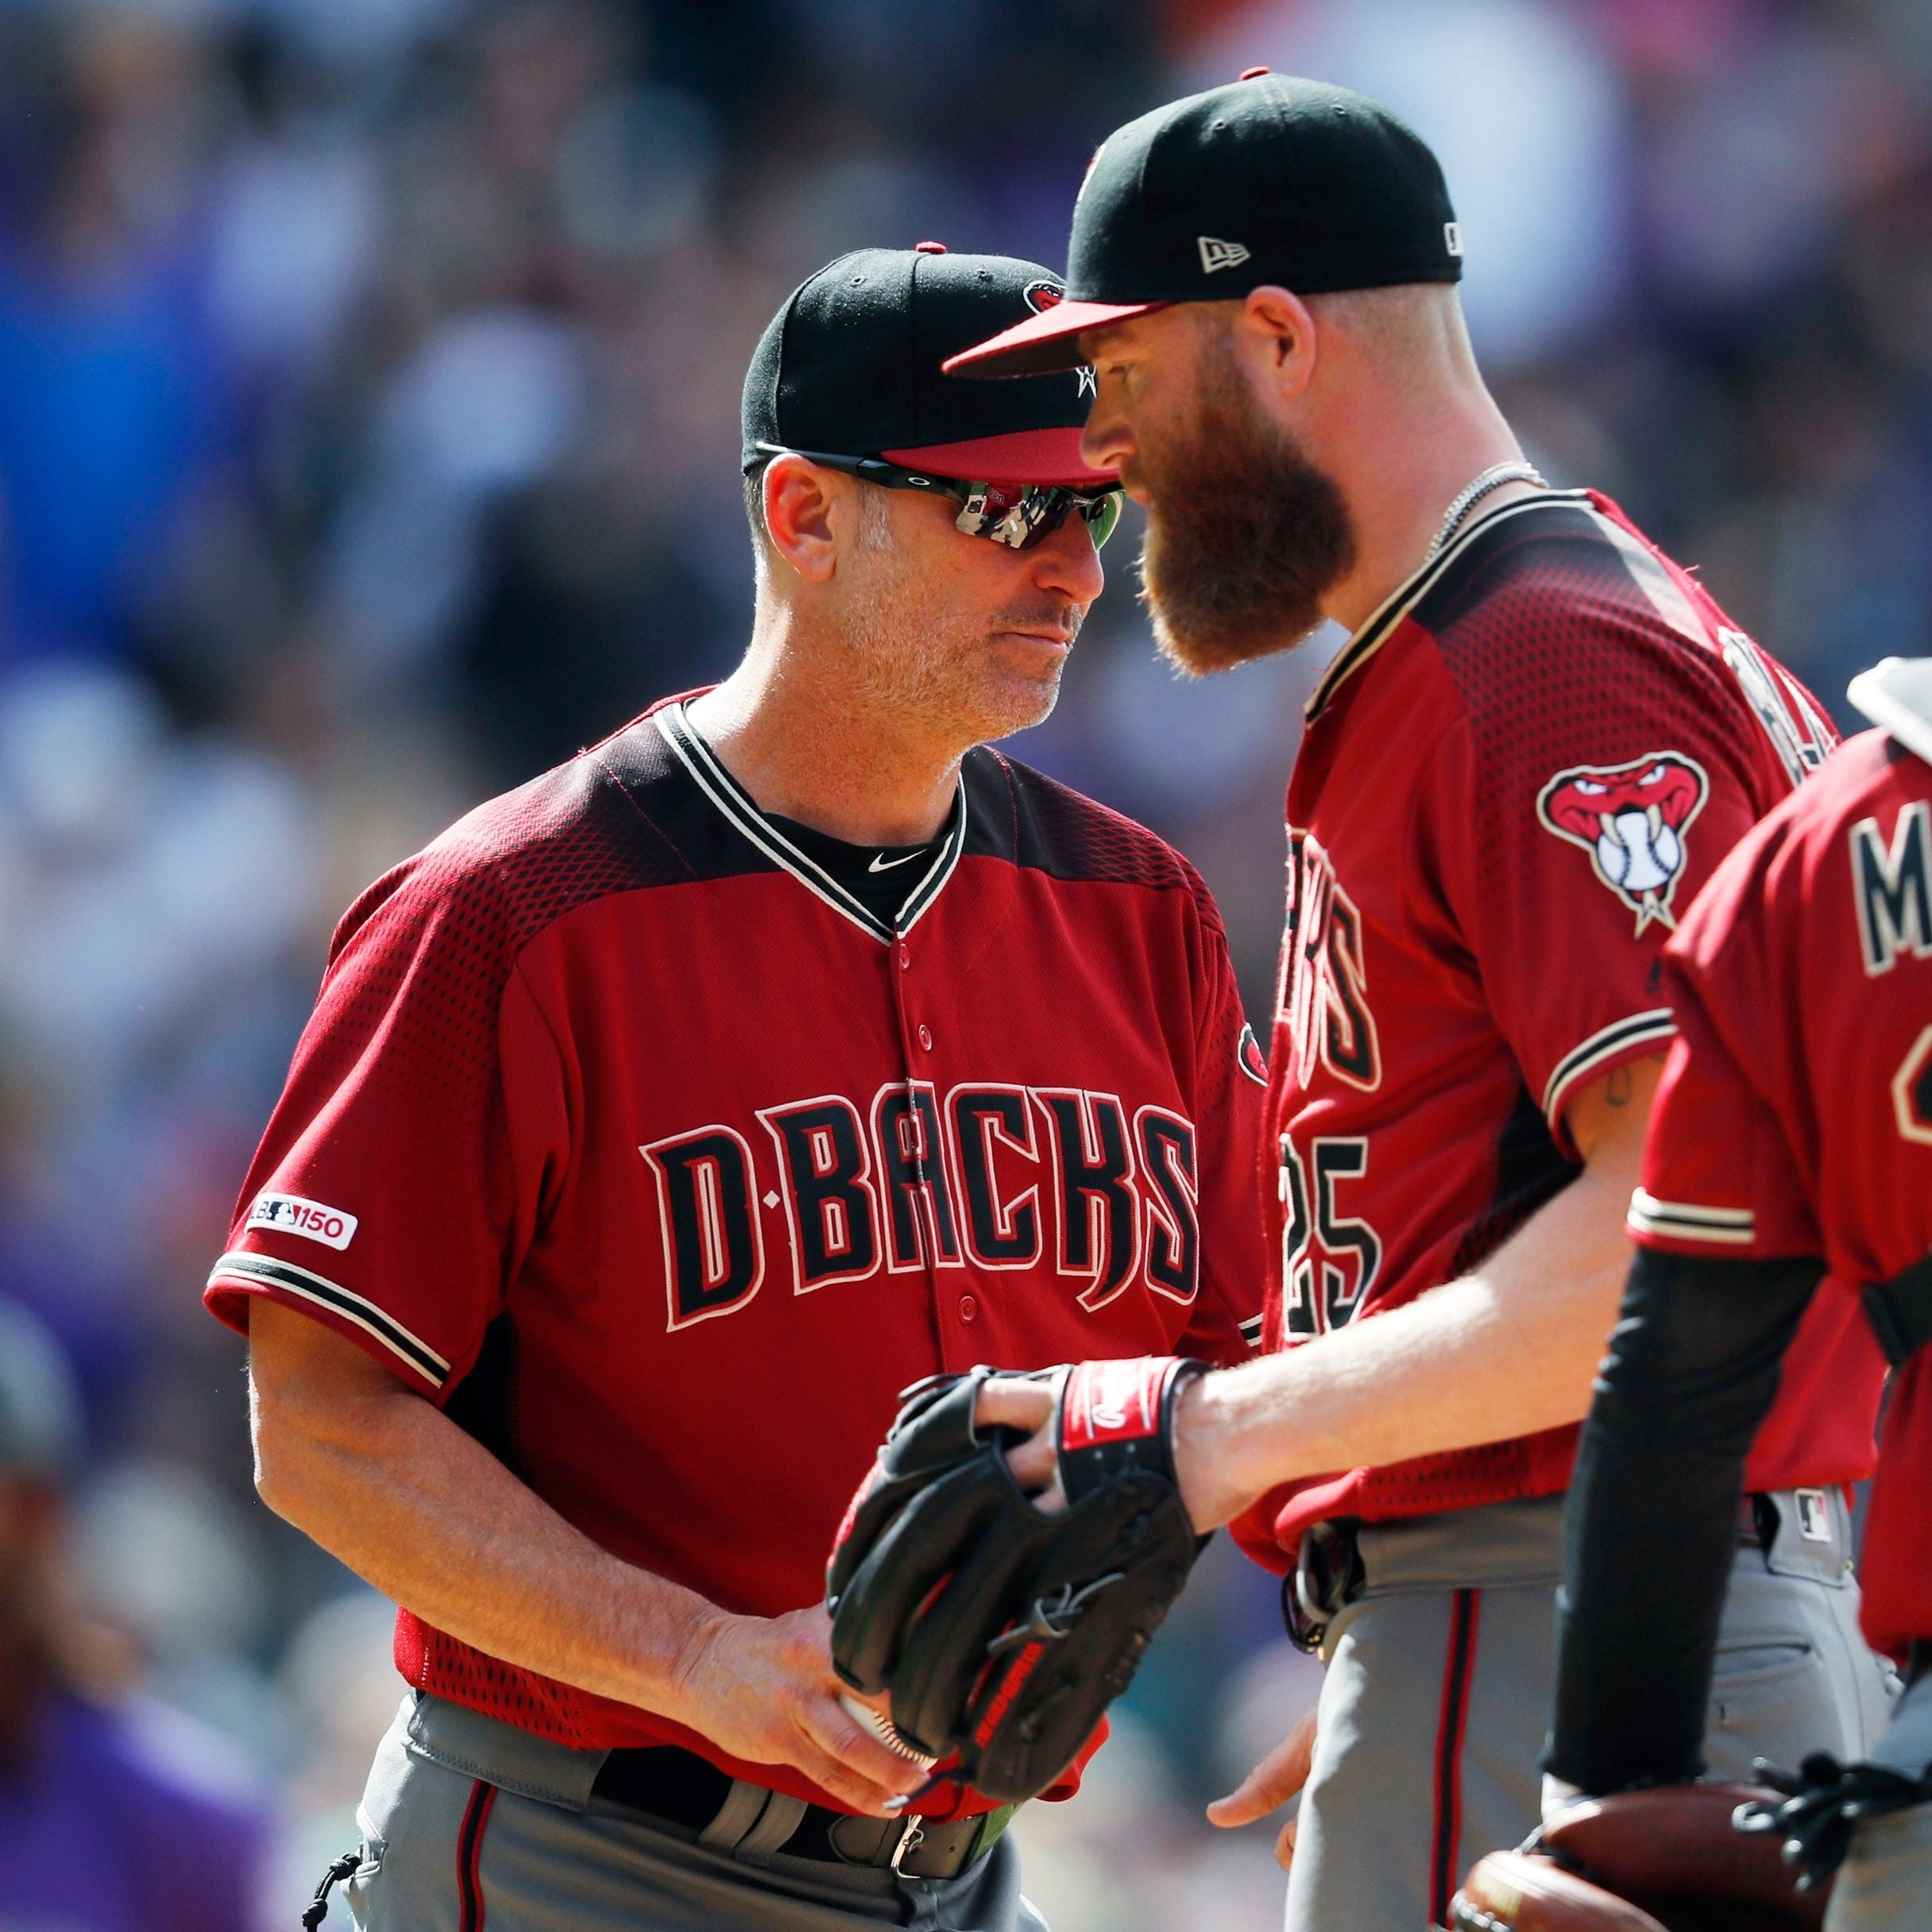 Diamondbacks' stunning loss to Rockies shines light on bullpen's validity